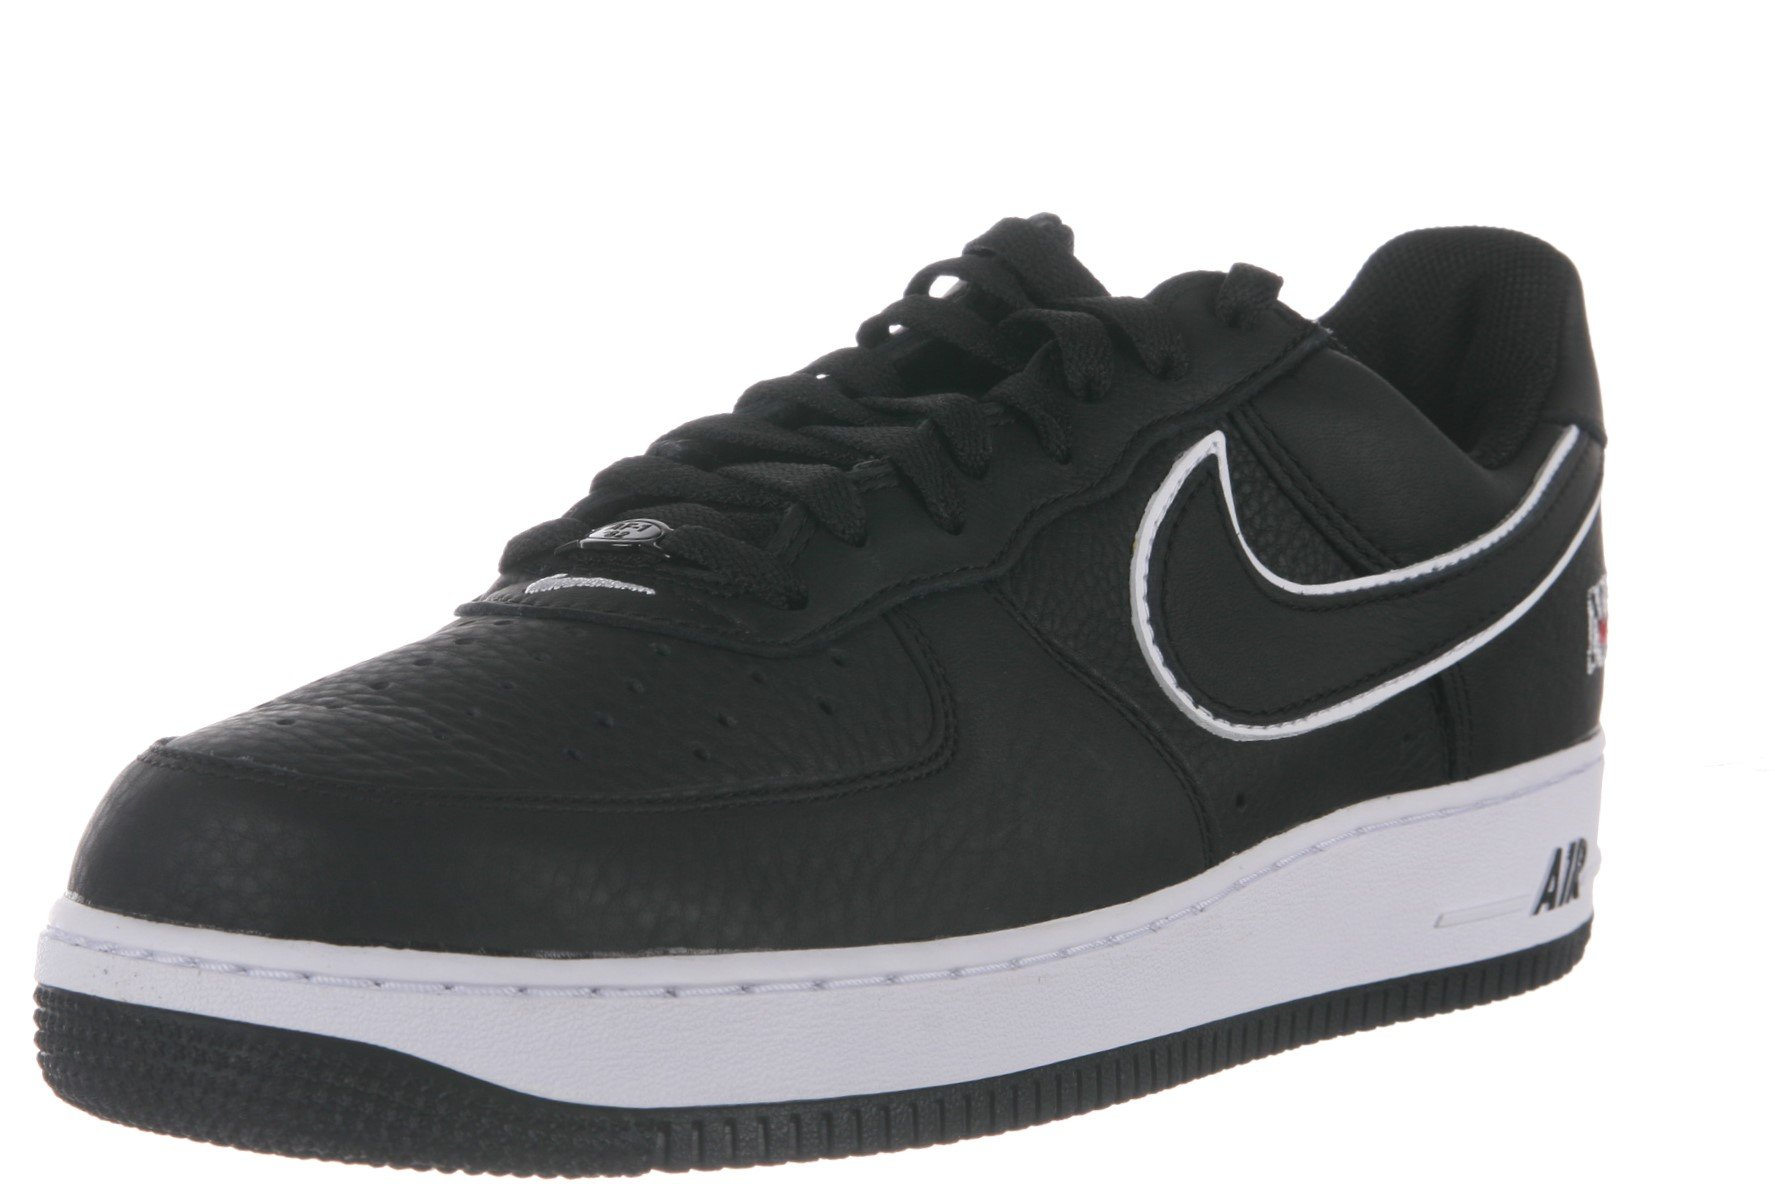 NIKE Air Force 1 Low Retro Mens Style : 845053 Style : 845053-002 Size : 9 D(M) US